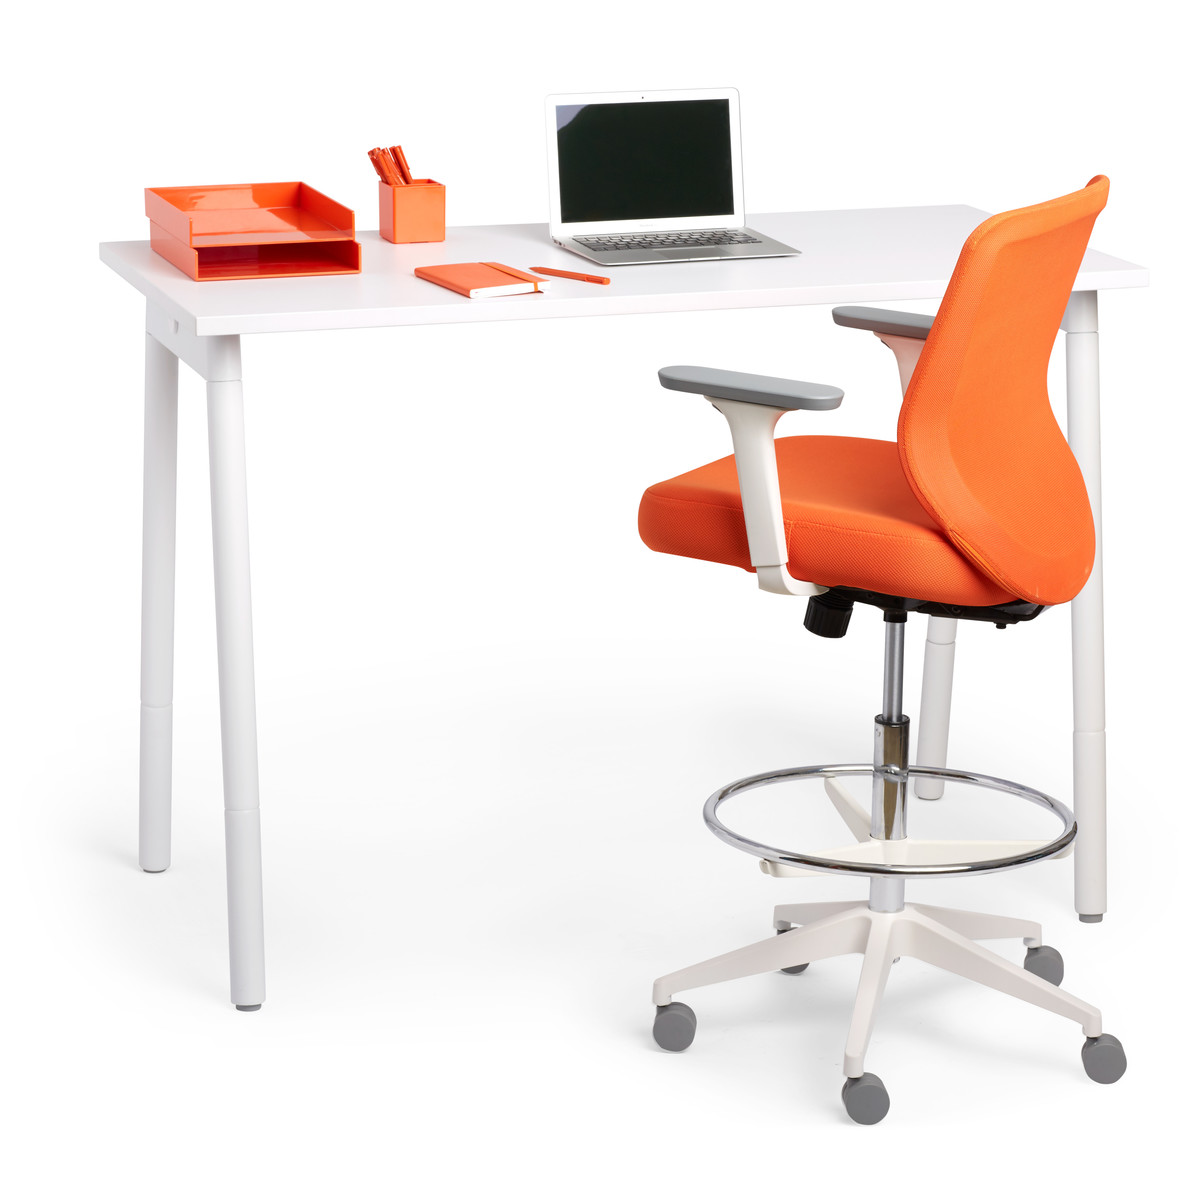 Colorful Desk Home Office Chairs Modern Office Furniture Poppin